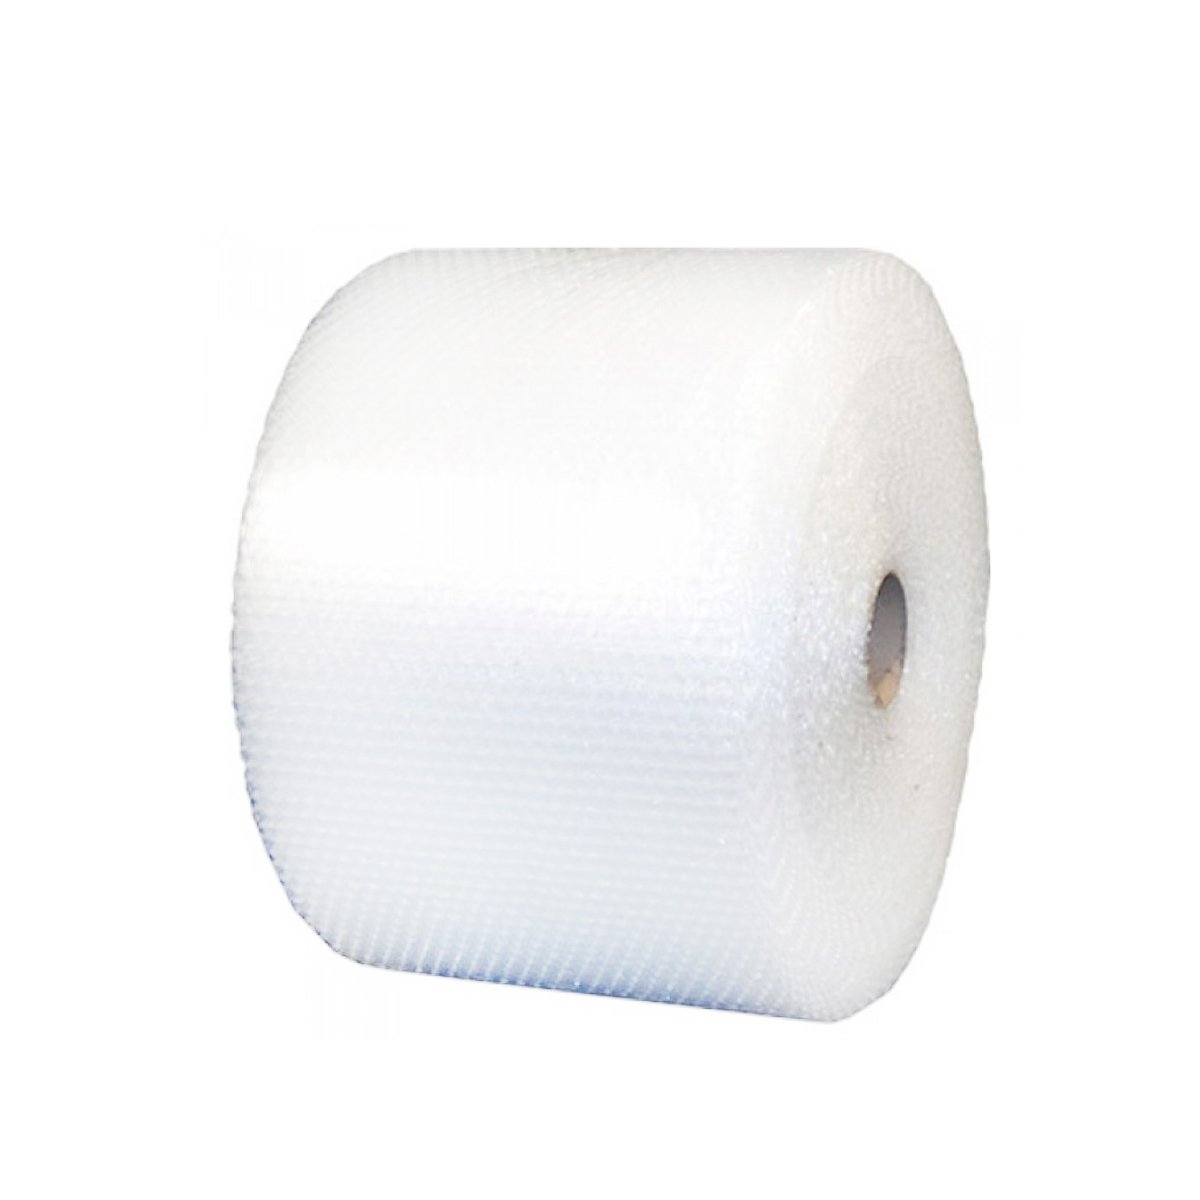 Bubble Roll Wrap - 48'' Wide x 130 Ft - Large 1/2'' Size Bubbles by StarBoxes